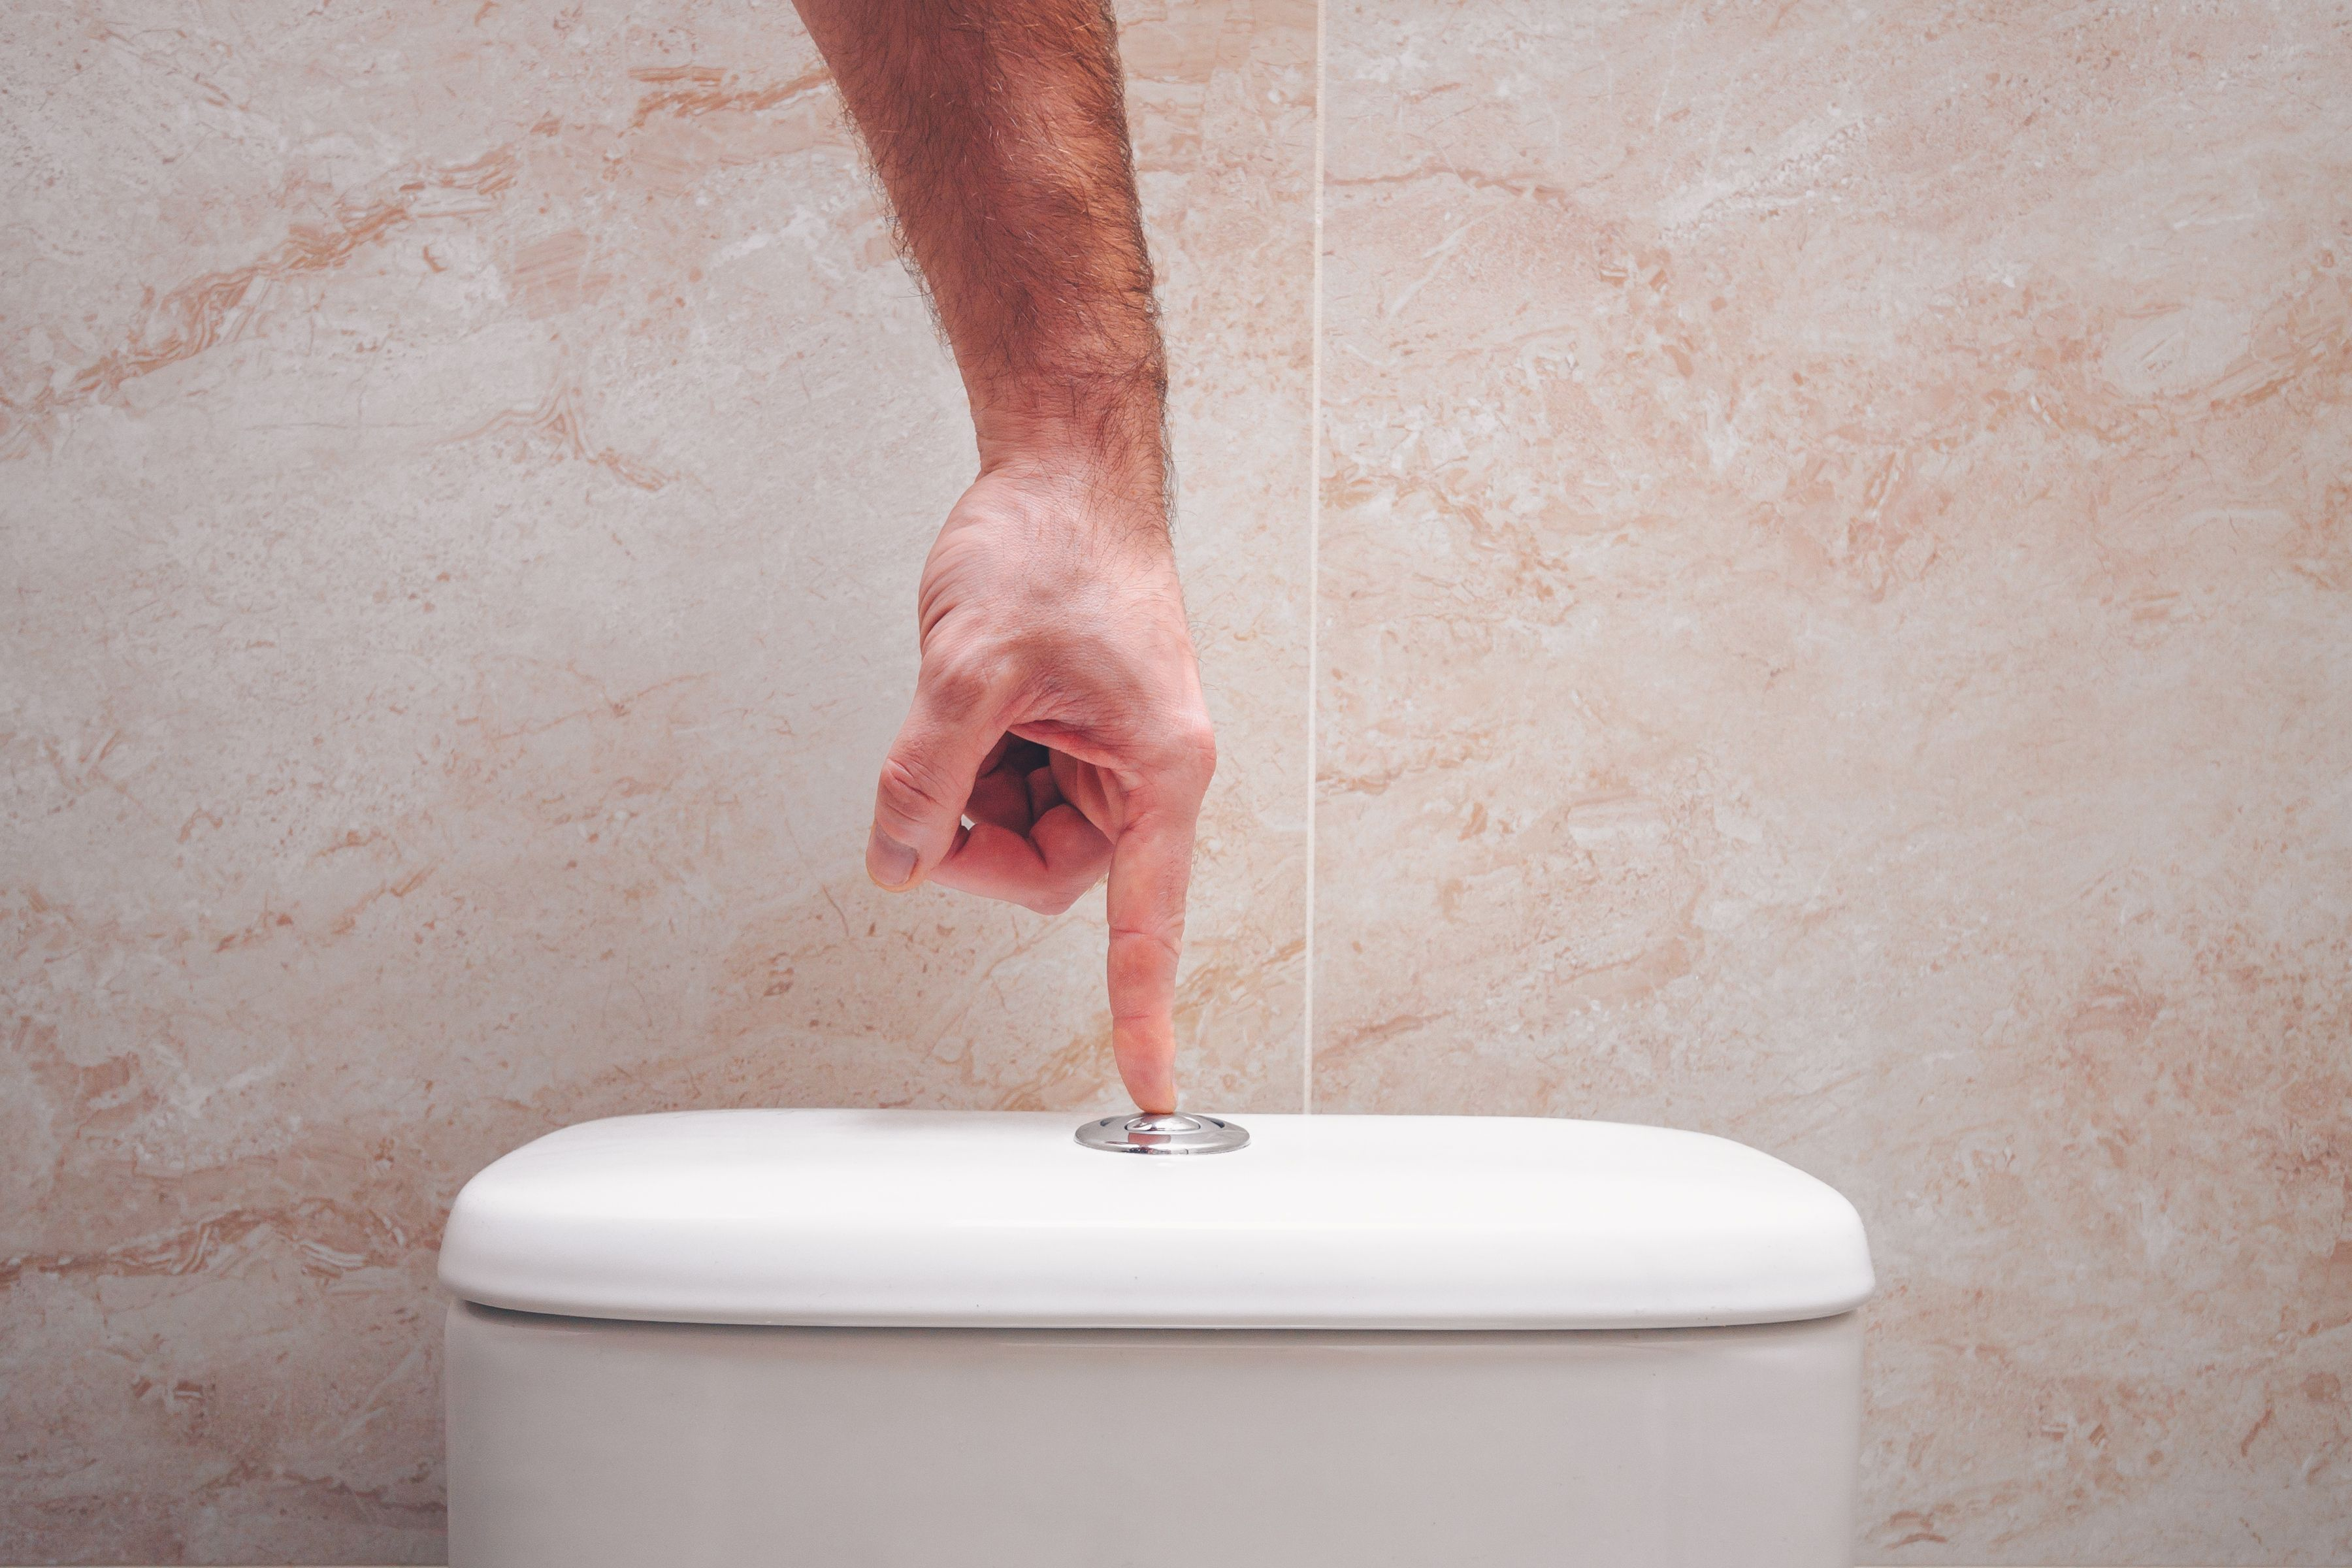 The One Thing You Can't Forget to Do Before Flushing the Toilet